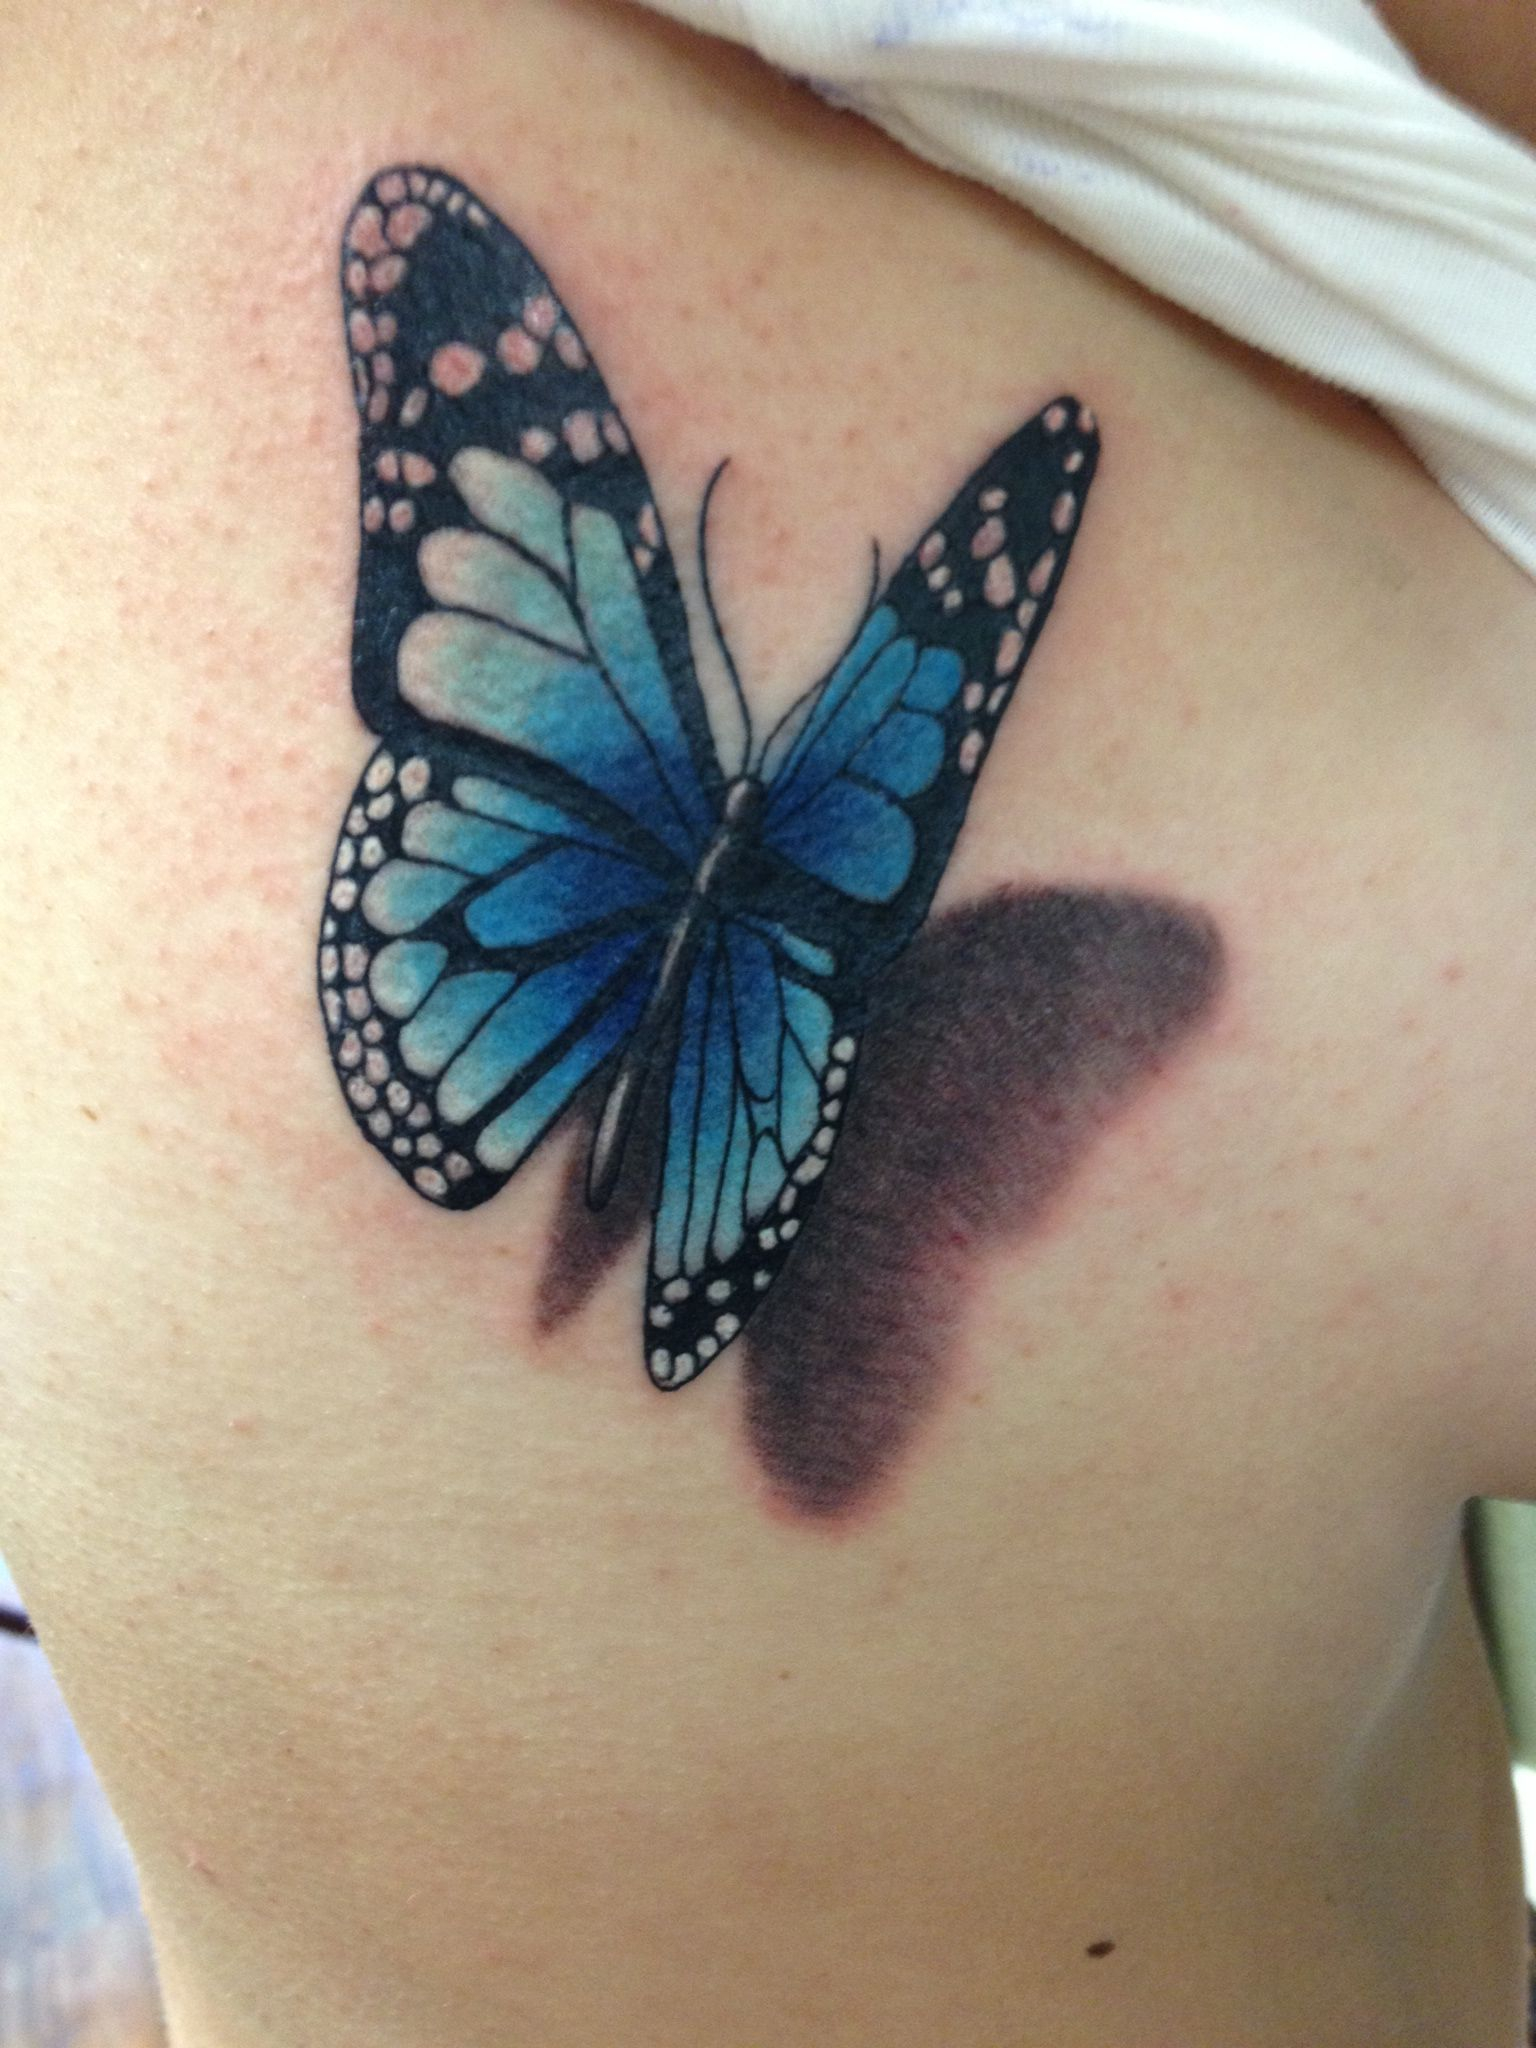 3d Butterfly Tattoo Courtesy Of Chris At Pretty In Ink Roseville Ca within size 1536 X 2048